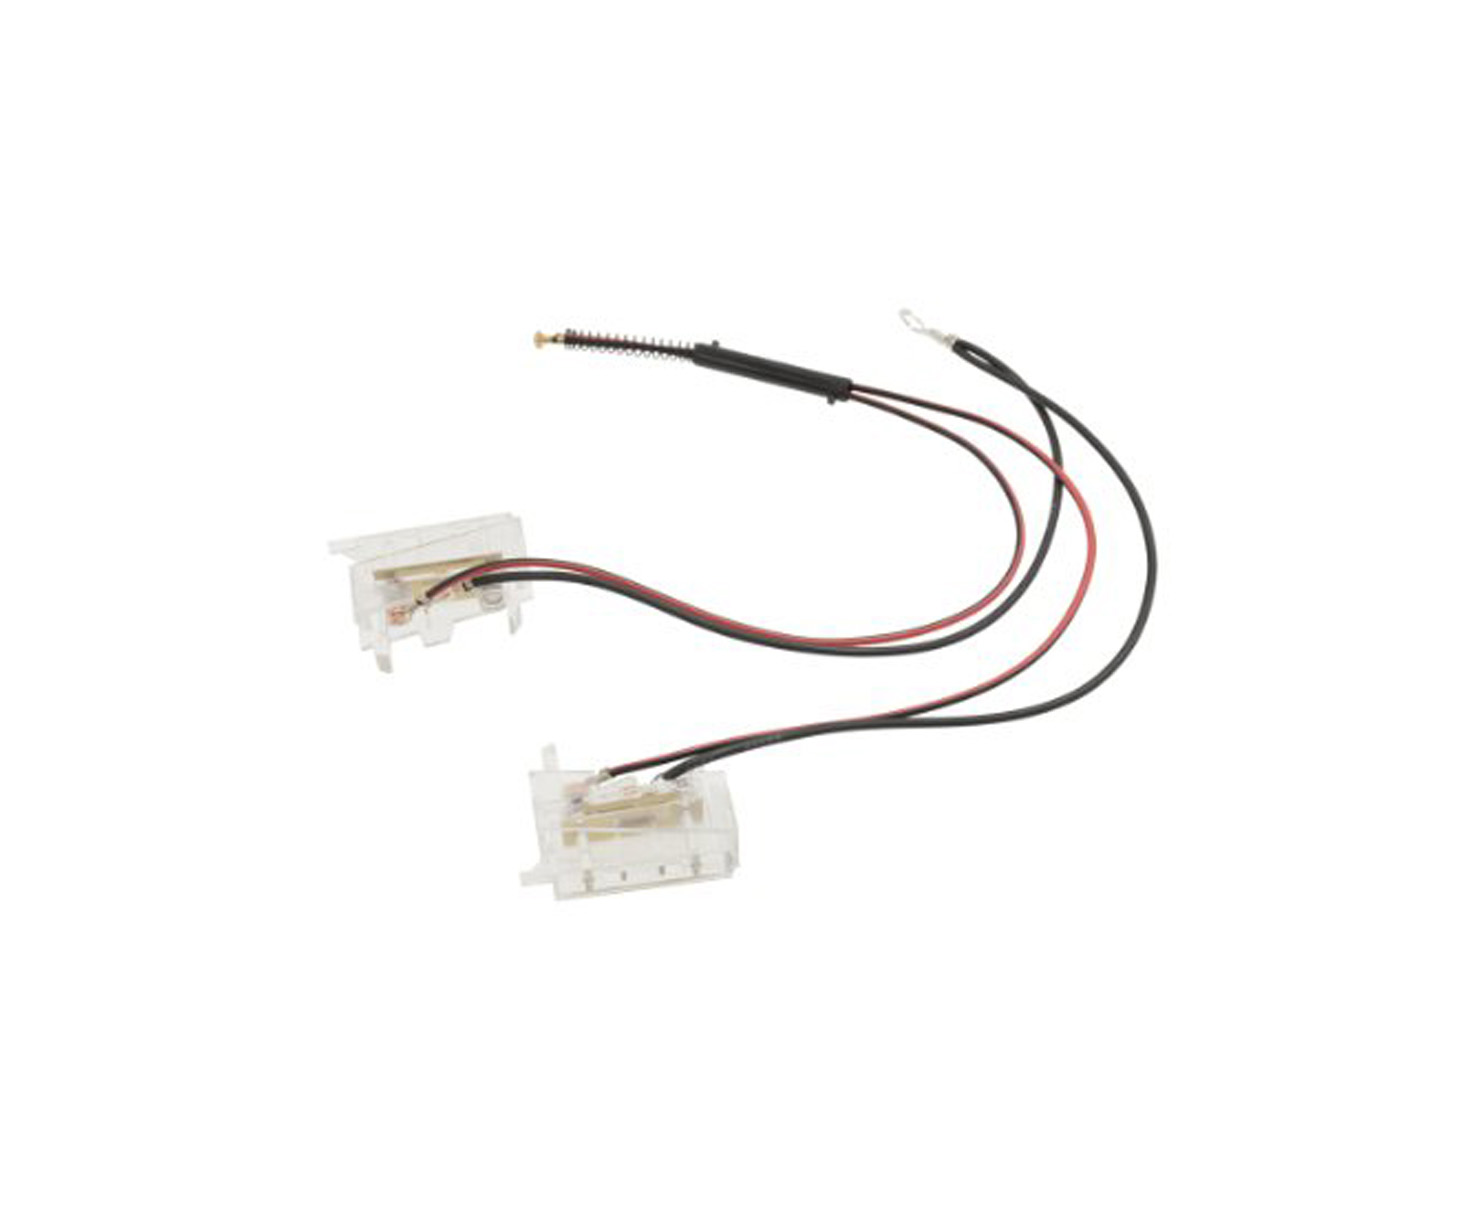 1994 Corvette Horn Wiring Diagram. 68 camaro horn relay wiring harness free  download 68. 1994 1996 corvette horn button contact switch. 68 camaro horn  relay wiring harness free download 1969. 1974 1982A.2002-acura-tl-radio.info. All Rights Reserved.